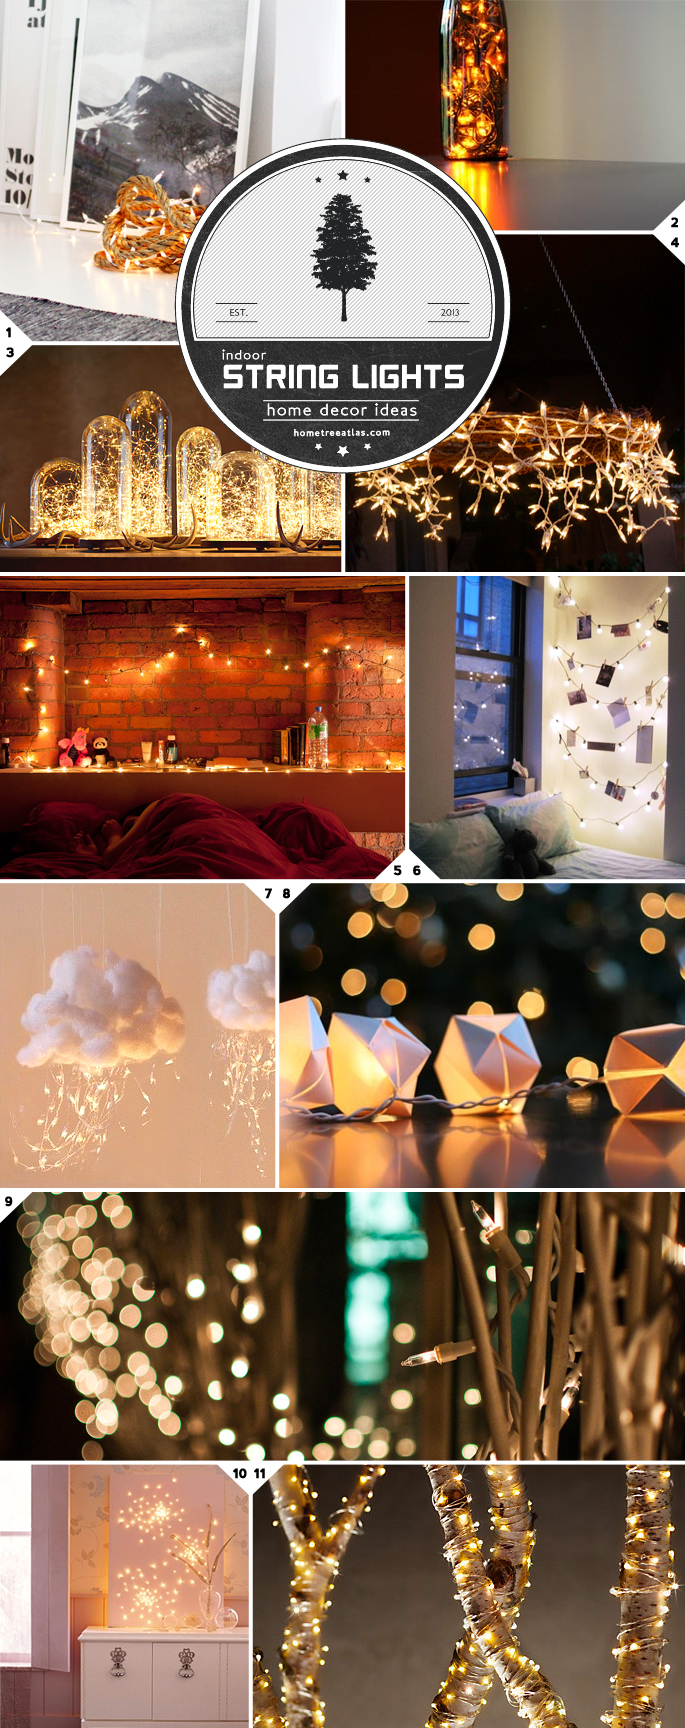 String Lights Ideas : Home Decor Ideas: Beautiful Ways to Use String Lights Indoors Home Tree Atlas